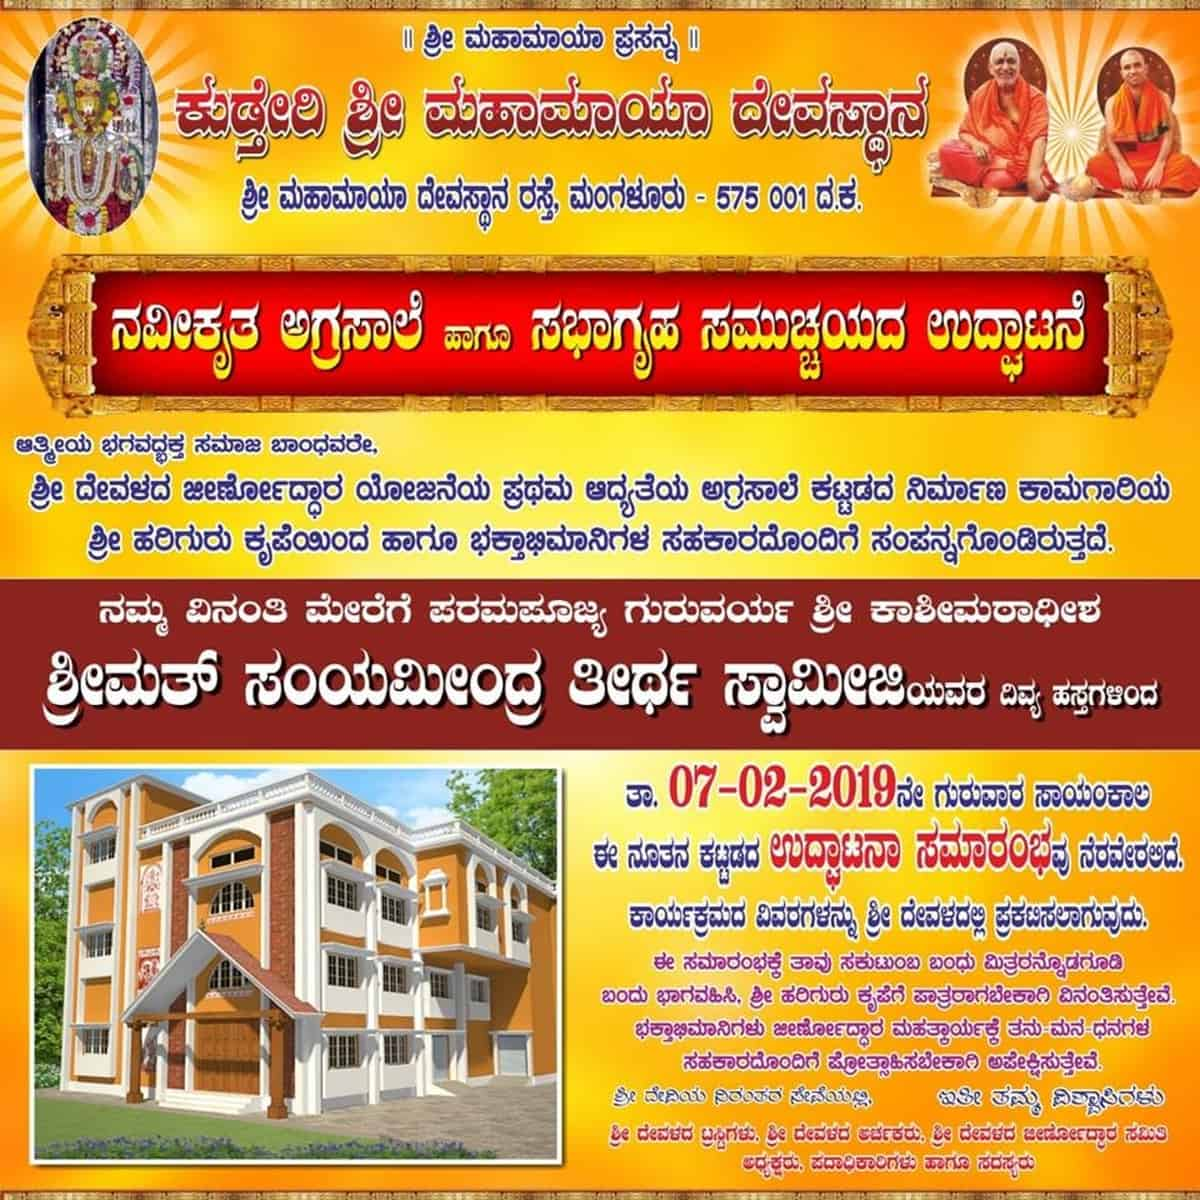 Inauguration of Sabhagriha at Sri Mahamaya Temple, Mangalore